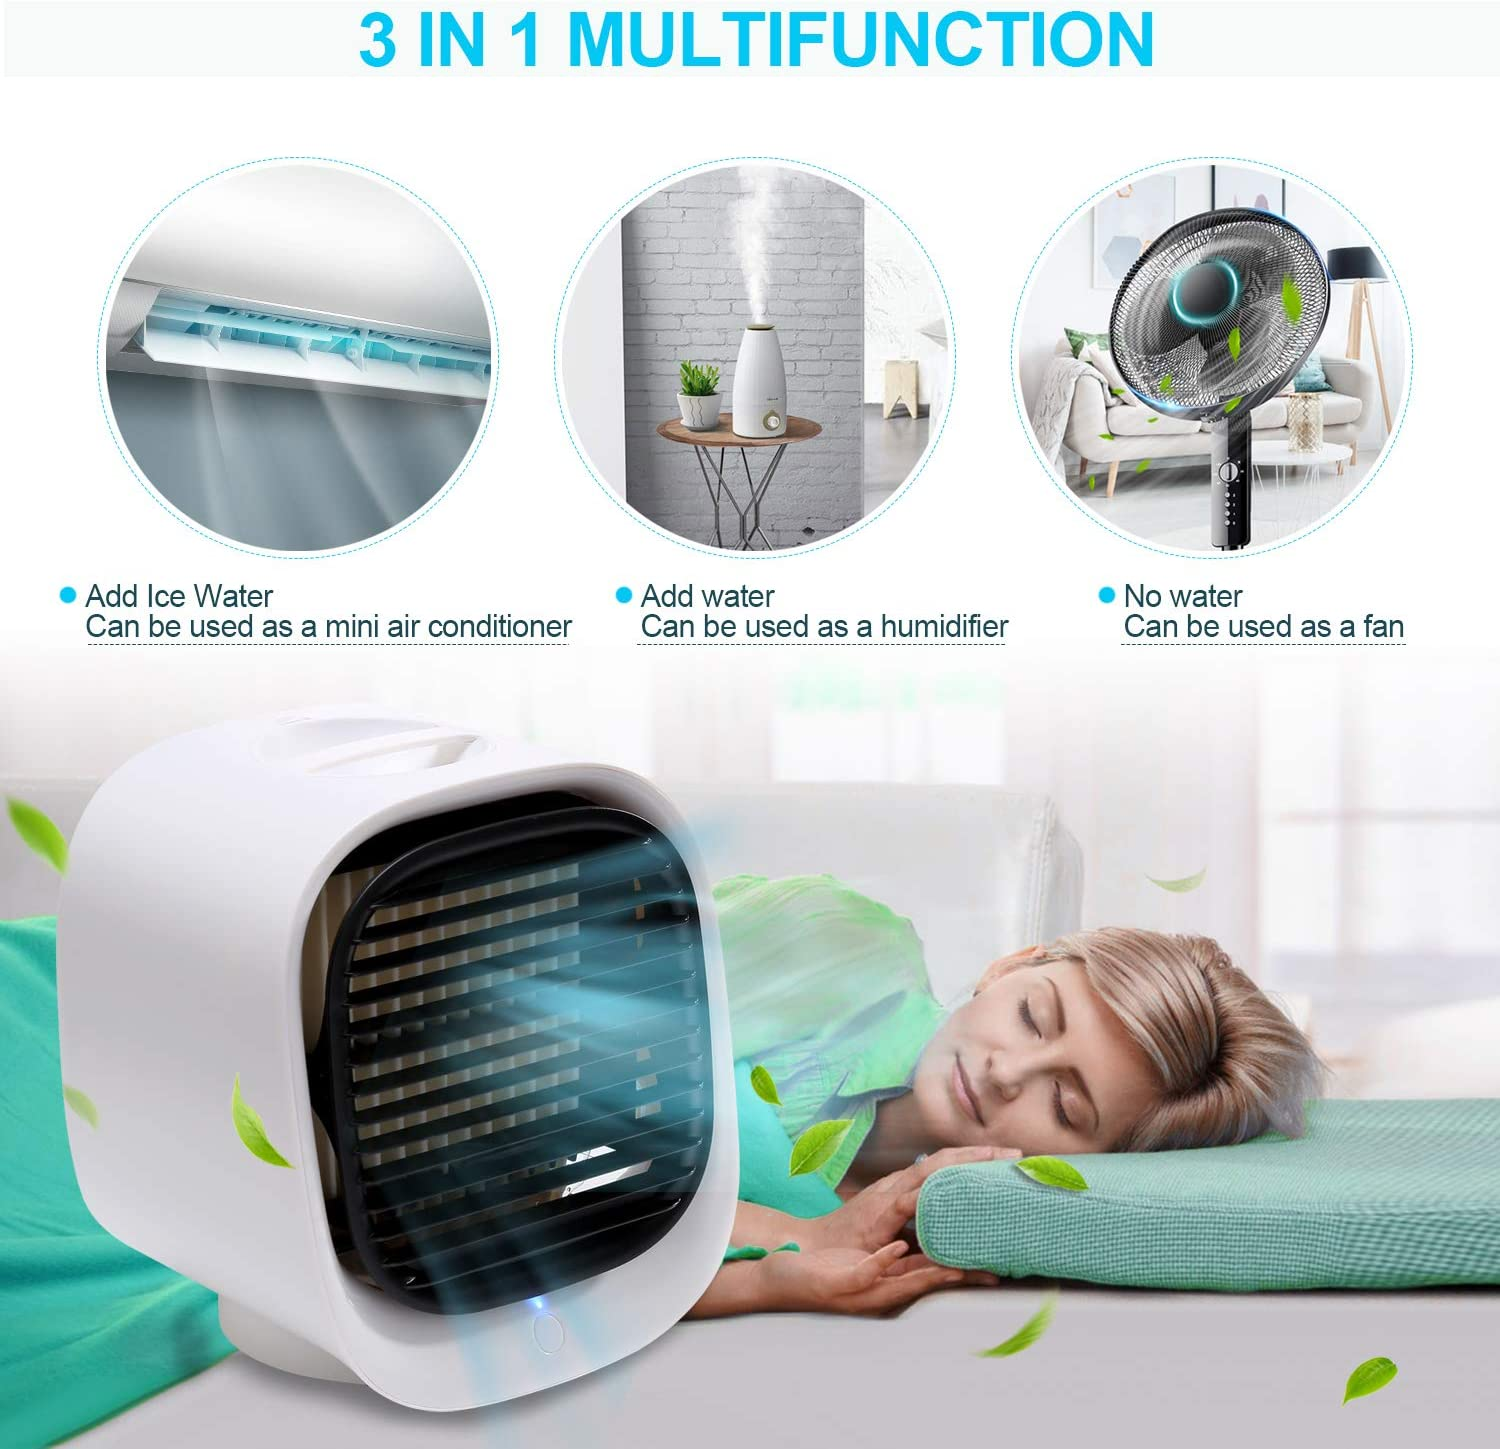 Sterilizer Purifier Desktop Cooling Fan with 3 Speeds for Home Room Office Humidifier EUBUY Portable Air Cooler,Personal Space Air Cooler Green 4 in 1 Mini USB Air Conditioner Fan